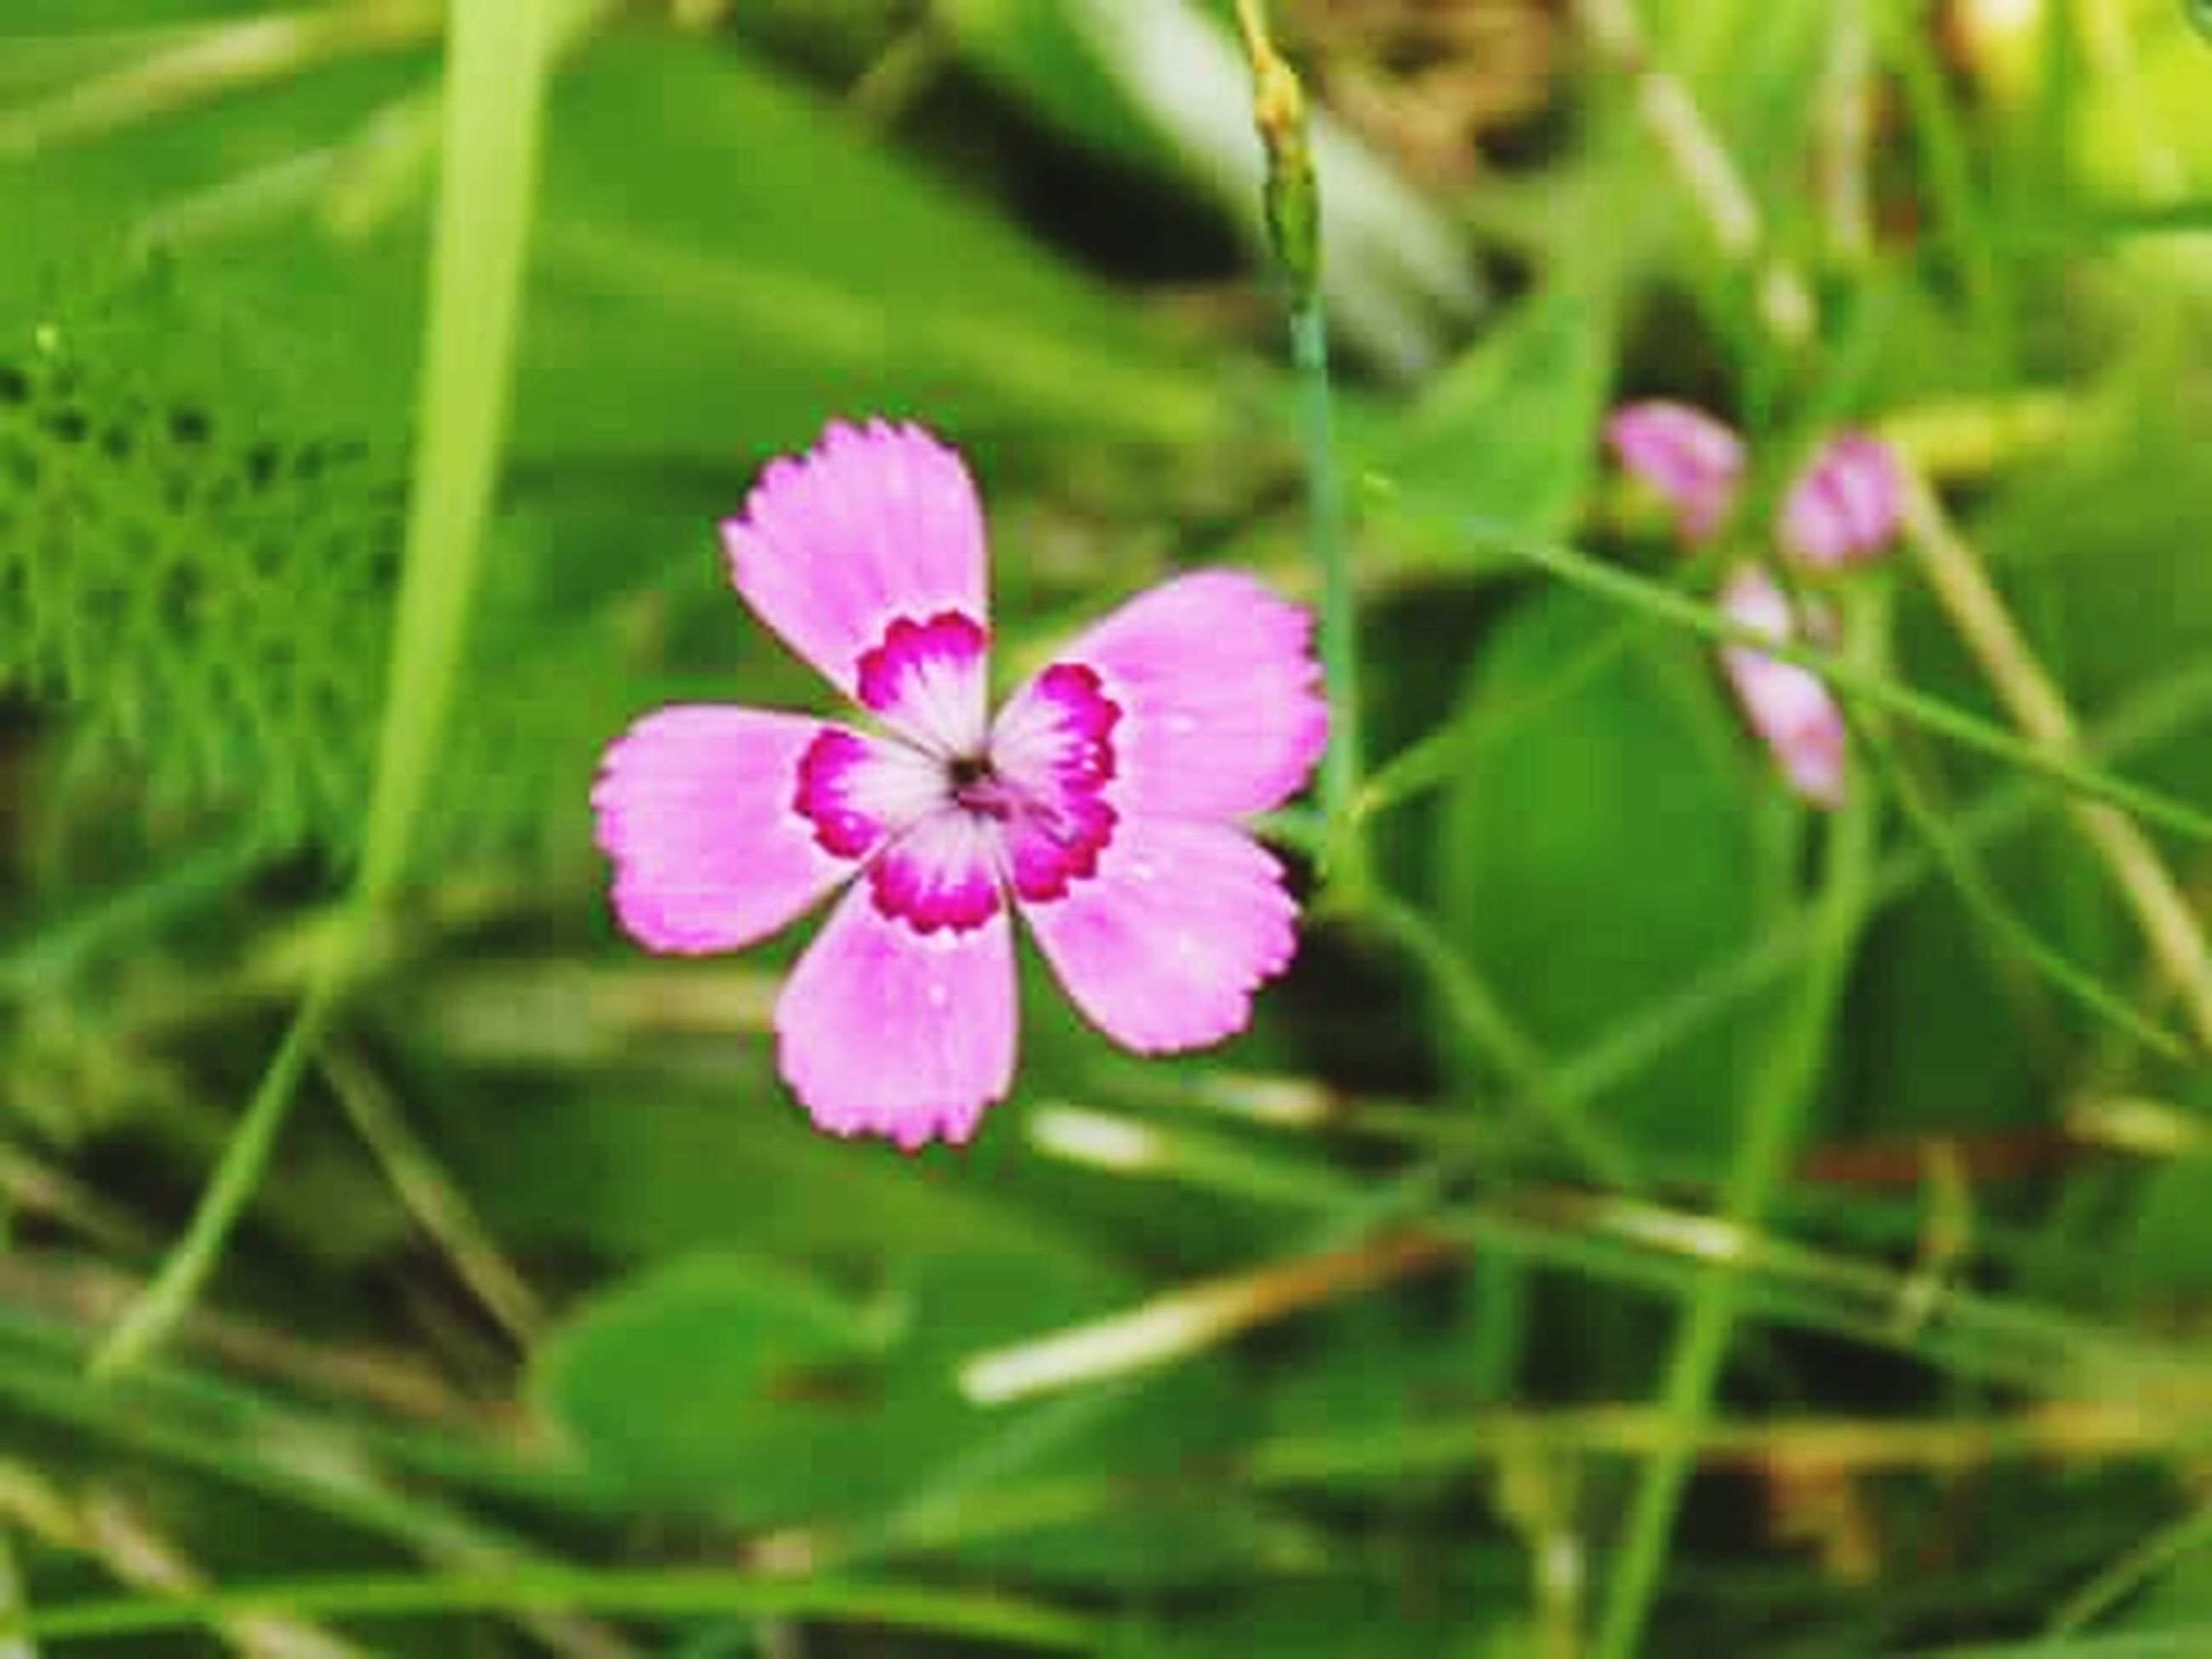 flower, freshness, petal, fragility, growth, flower head, beauty in nature, pink color, close-up, blooming, focus on foreground, plant, nature, single flower, leaf, in bloom, green color, day, outdoors, blossom